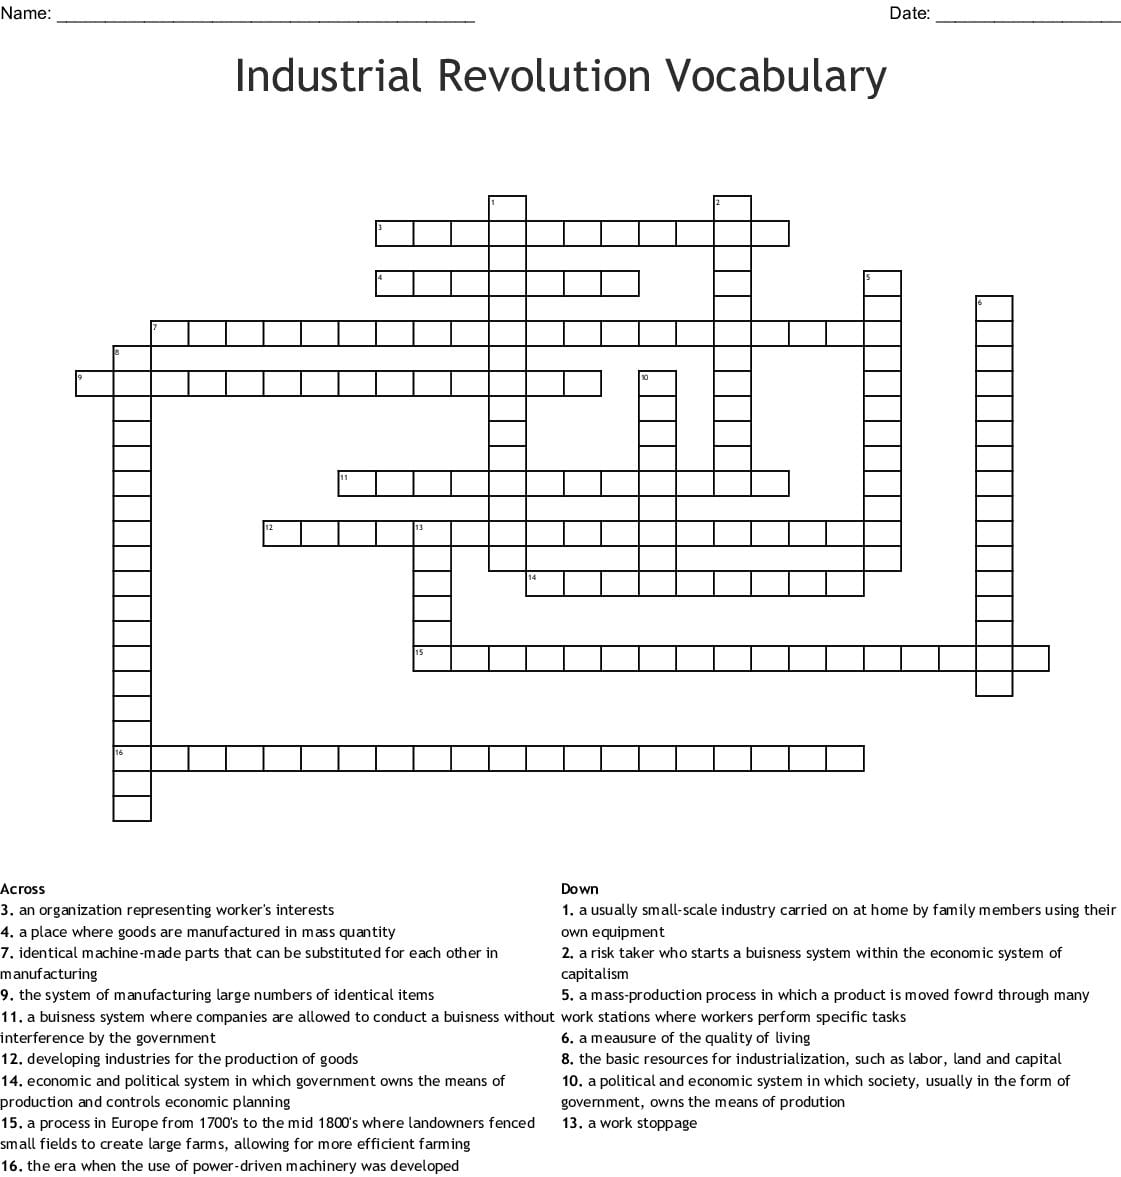 Industrialization Vocabulary Worksheet